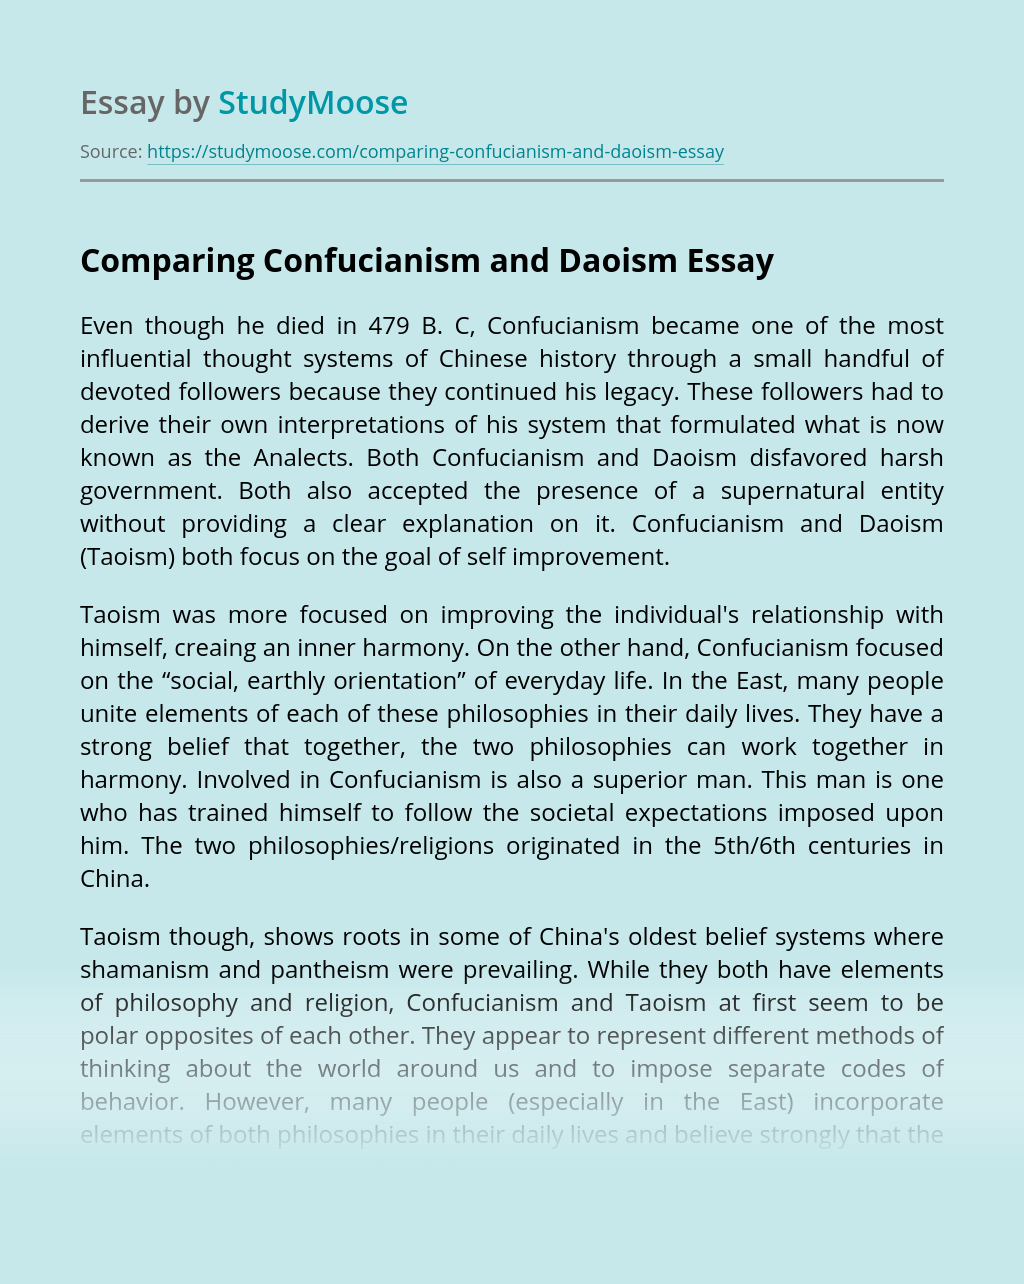 Comparing Confucianism and Daoism